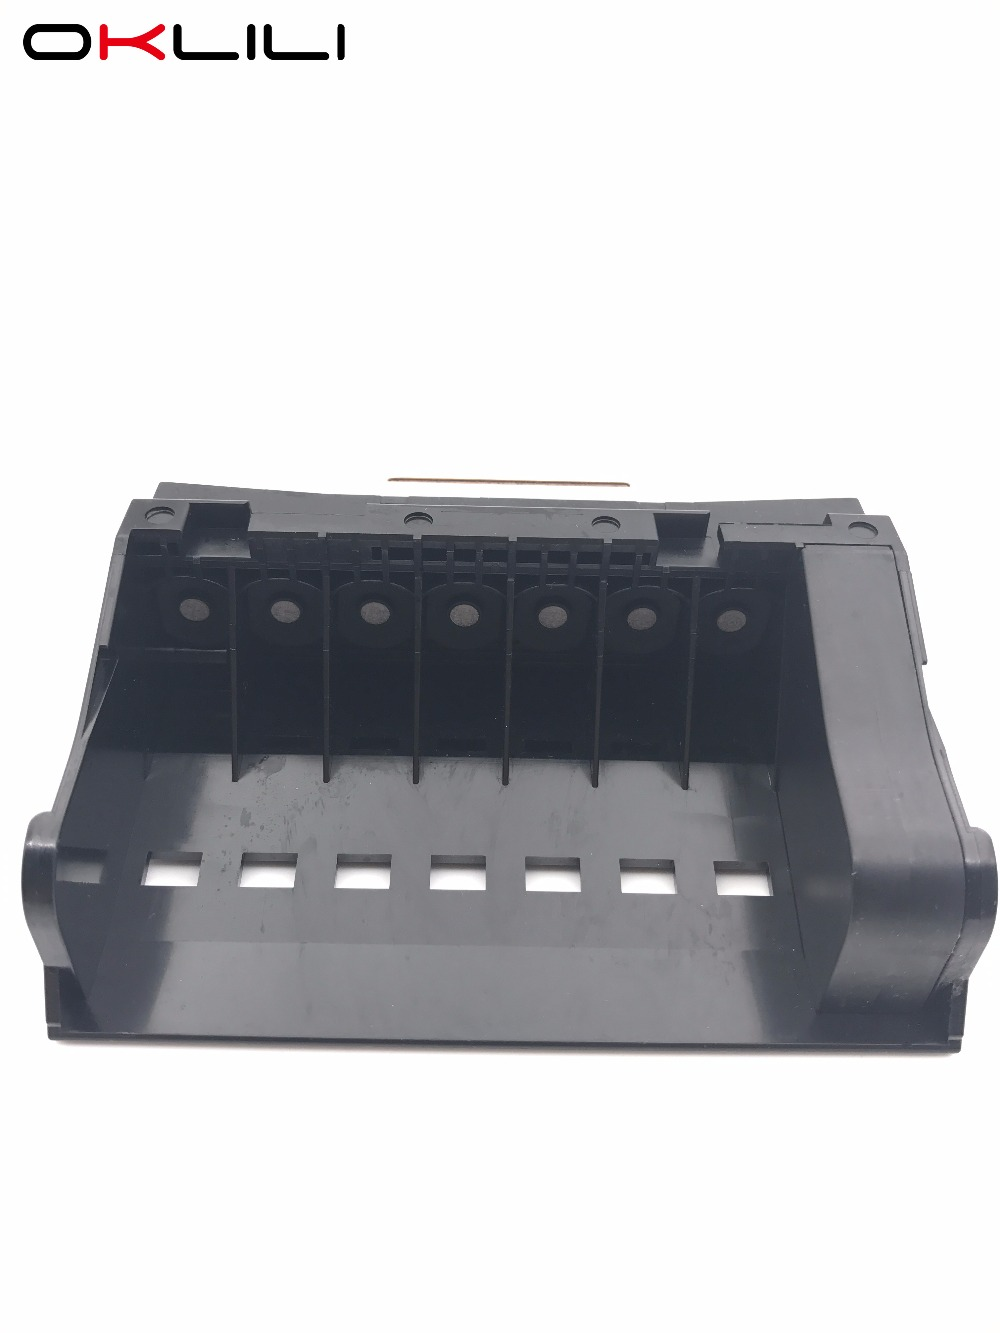 OKLILI ORIGINAL QY6-0053 QY6-0053-000 Printhead Print Head Printer Head for Canon PIXUS 990i i990 iP8100 original qy6 0075 qy6 0075 000 printhead print head printer head for canon ip5300 mp810 ip4500 mp610 mx850